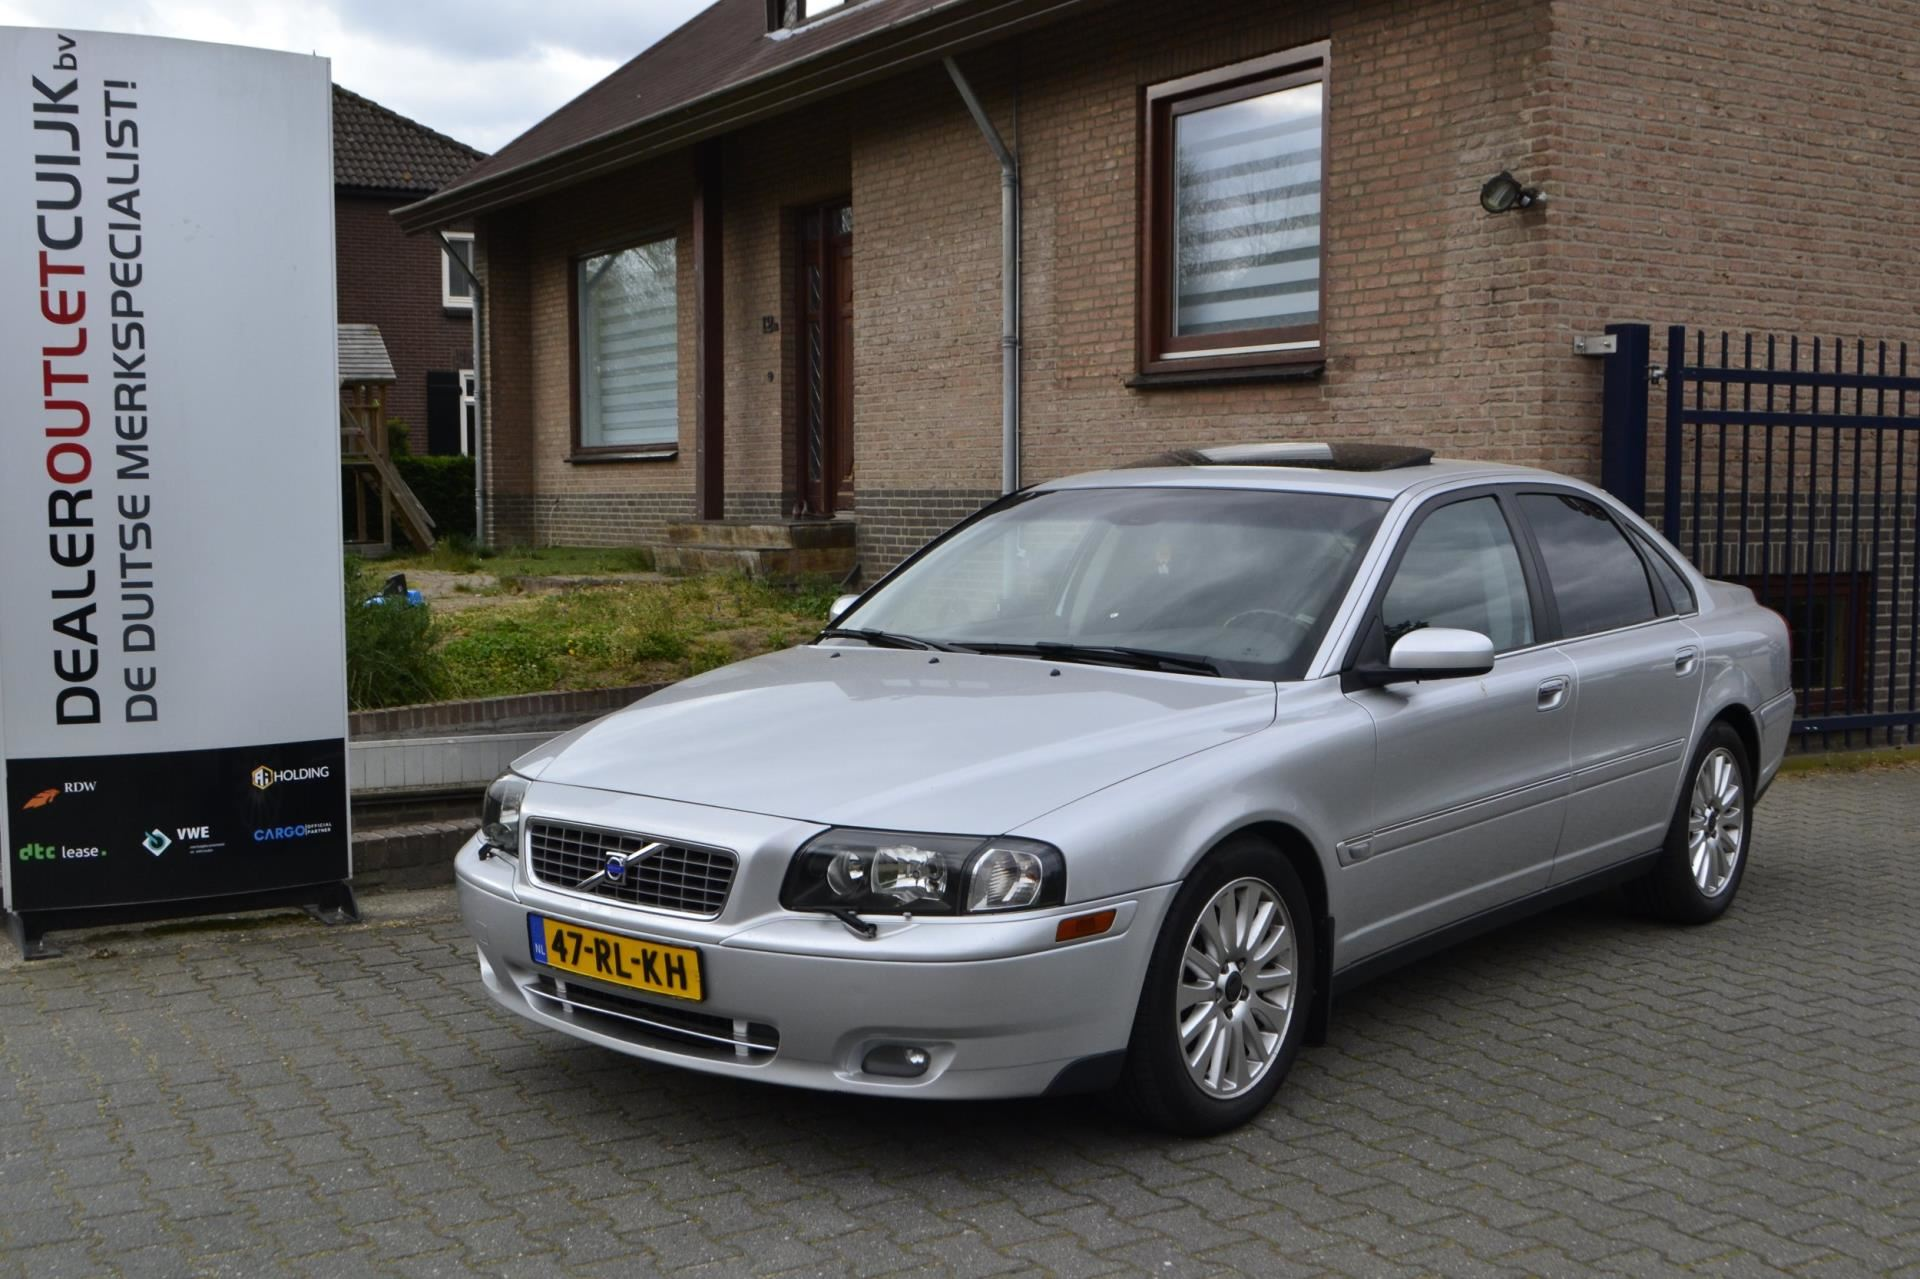 Volvo S80 occasion - Dealer Outlet Cuijk b.v.